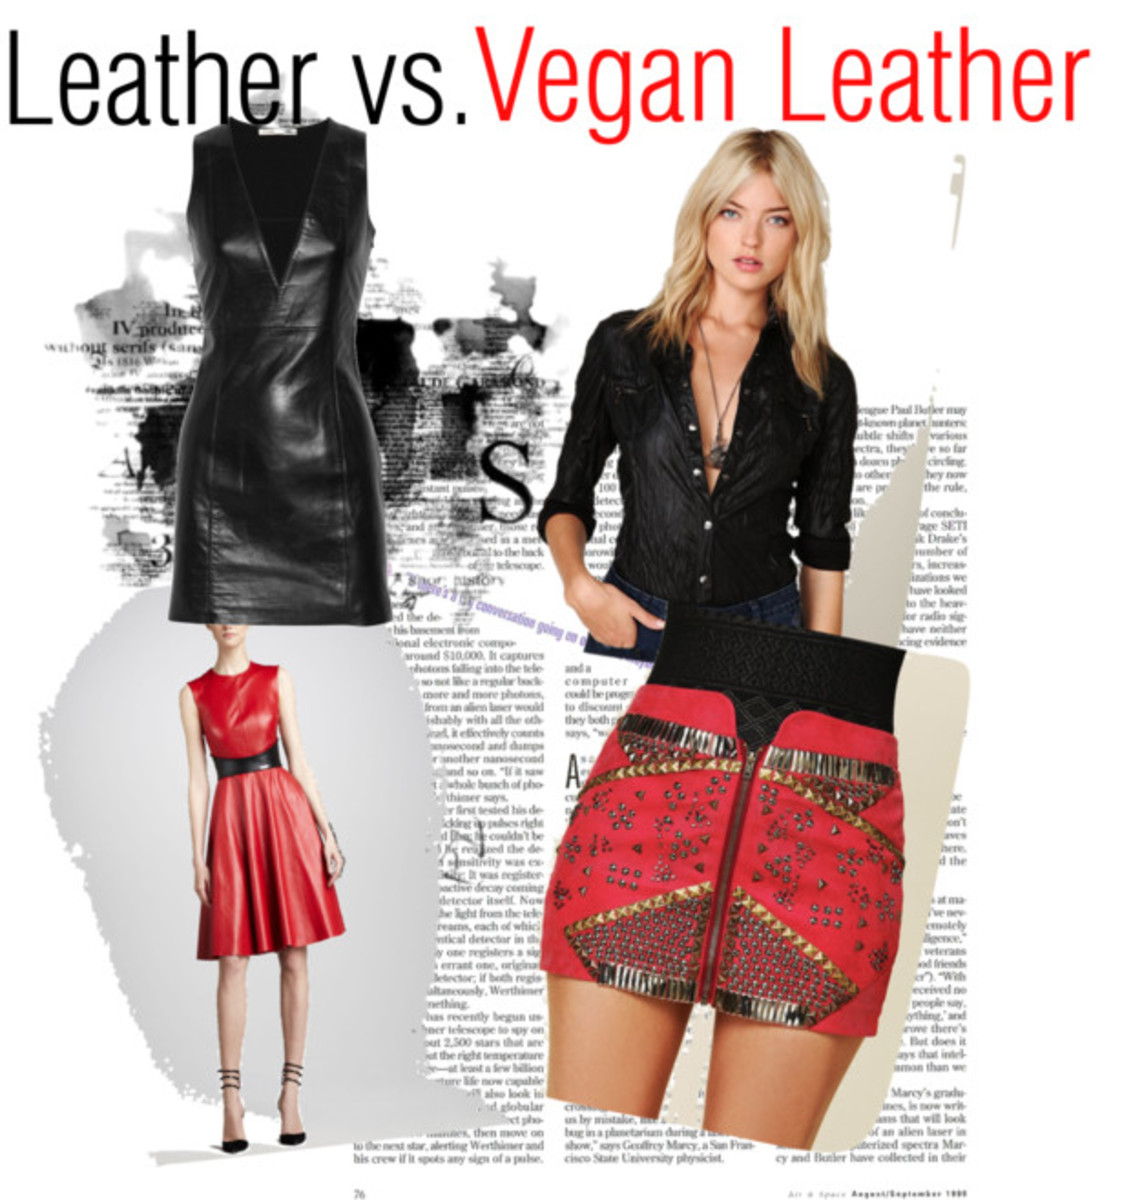 Leather vs. Vegan Leather